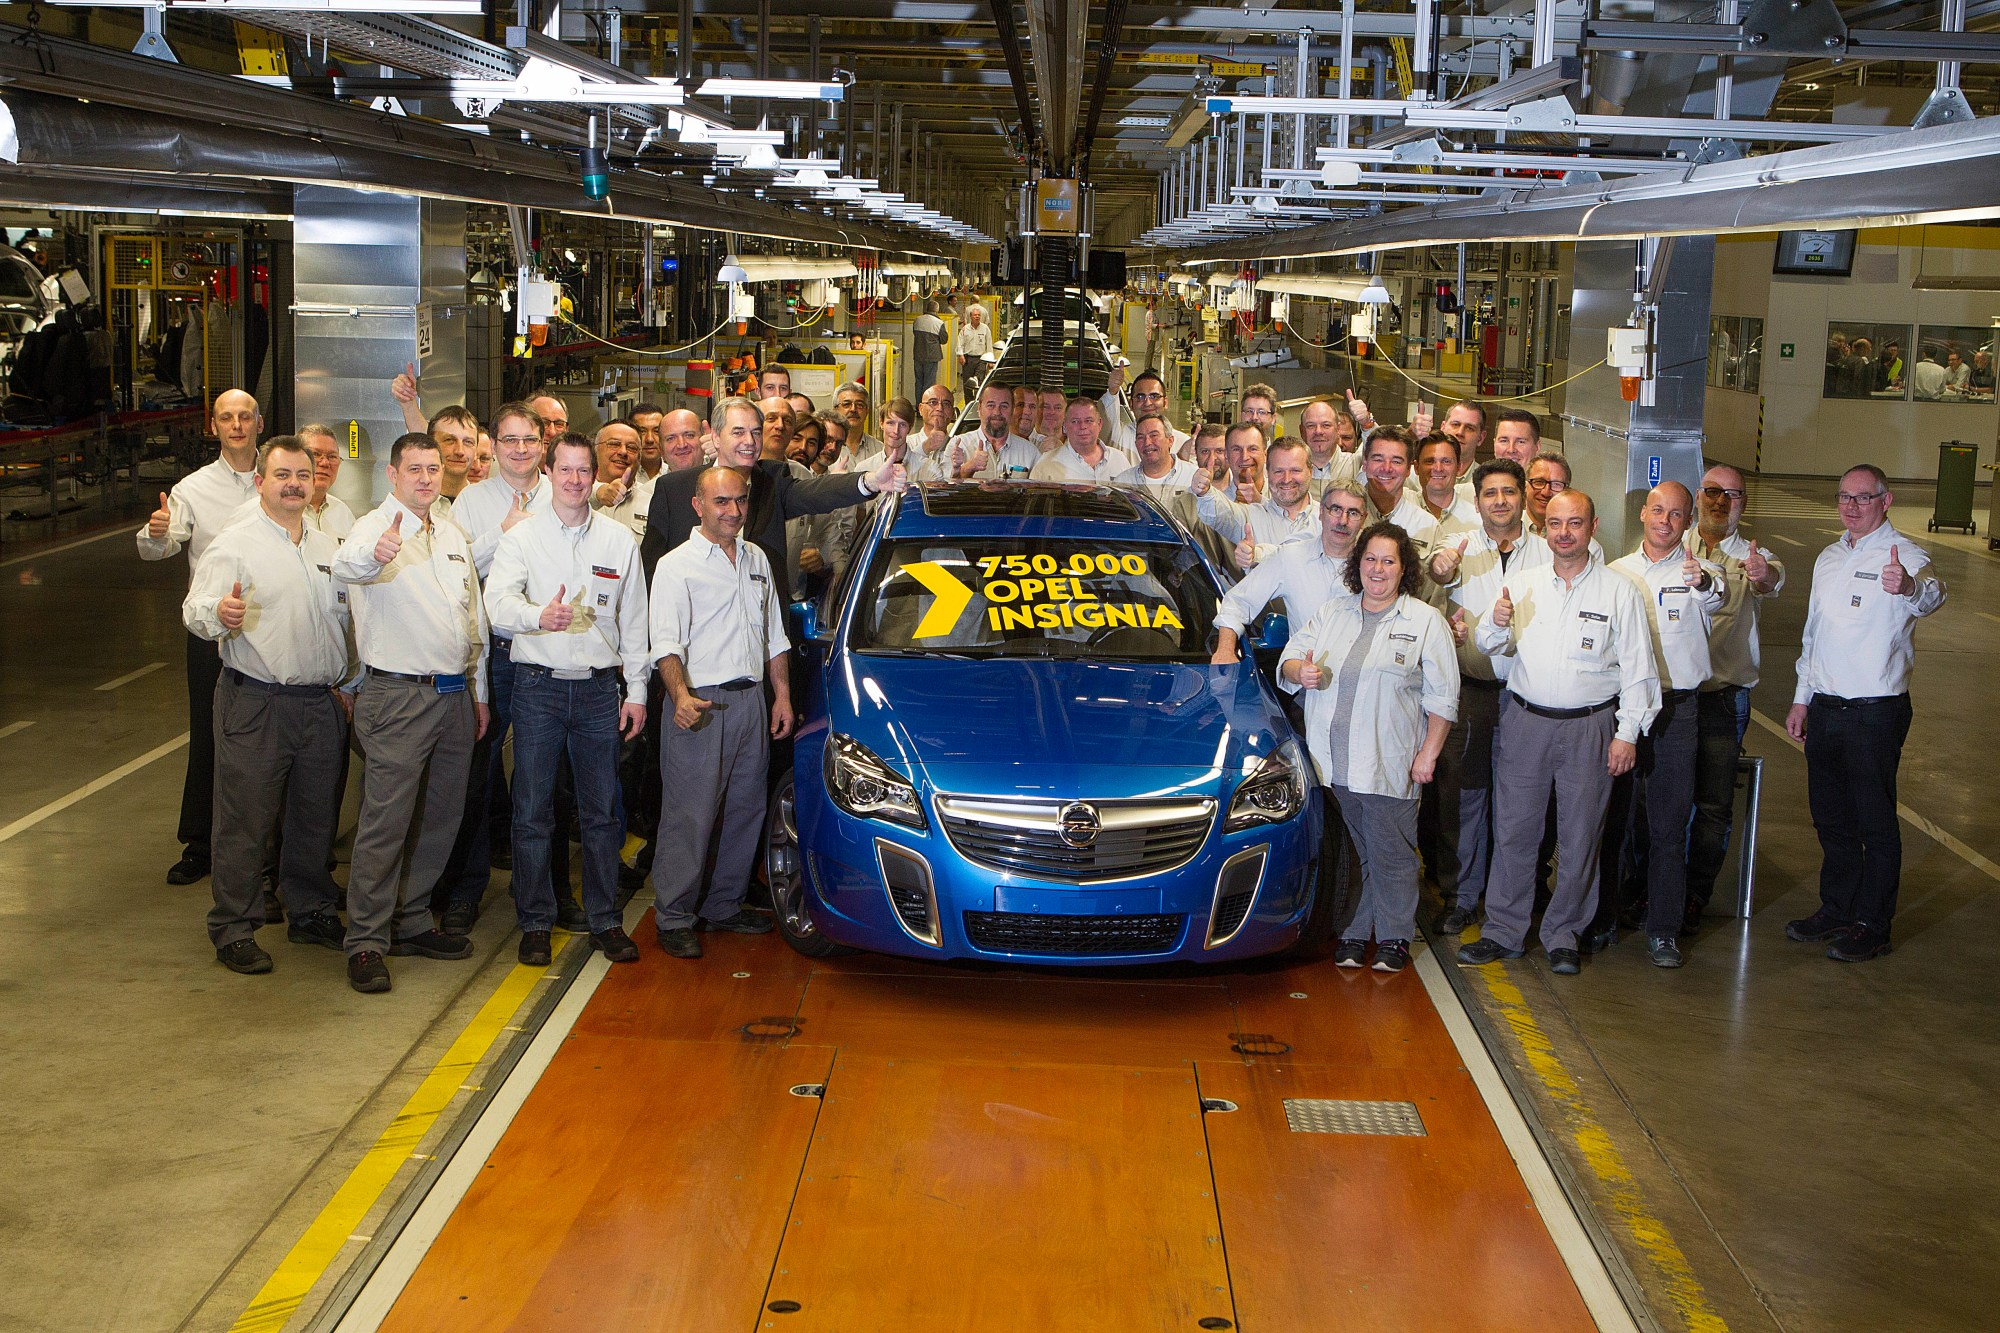 hight resolution of opel insignia reaches production milestone the 750 000th unit is an rh autoevolution com car amp wiring diagram simple car wiring diagram